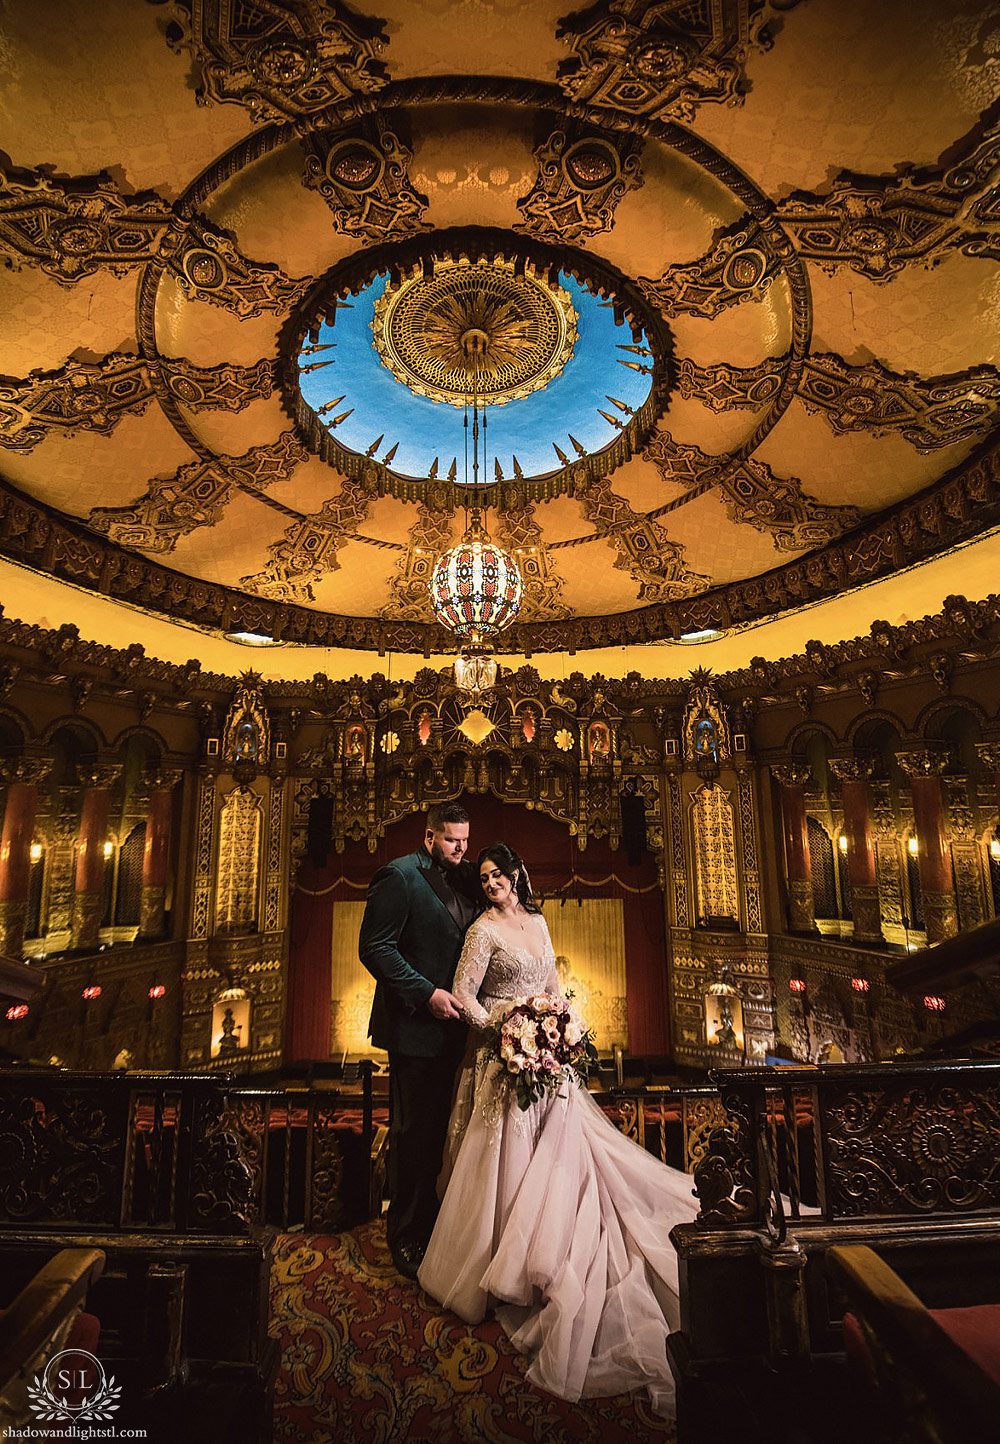 Incredible Fox Theater St. Louis wedding photo with bride and groom on Fox balcony